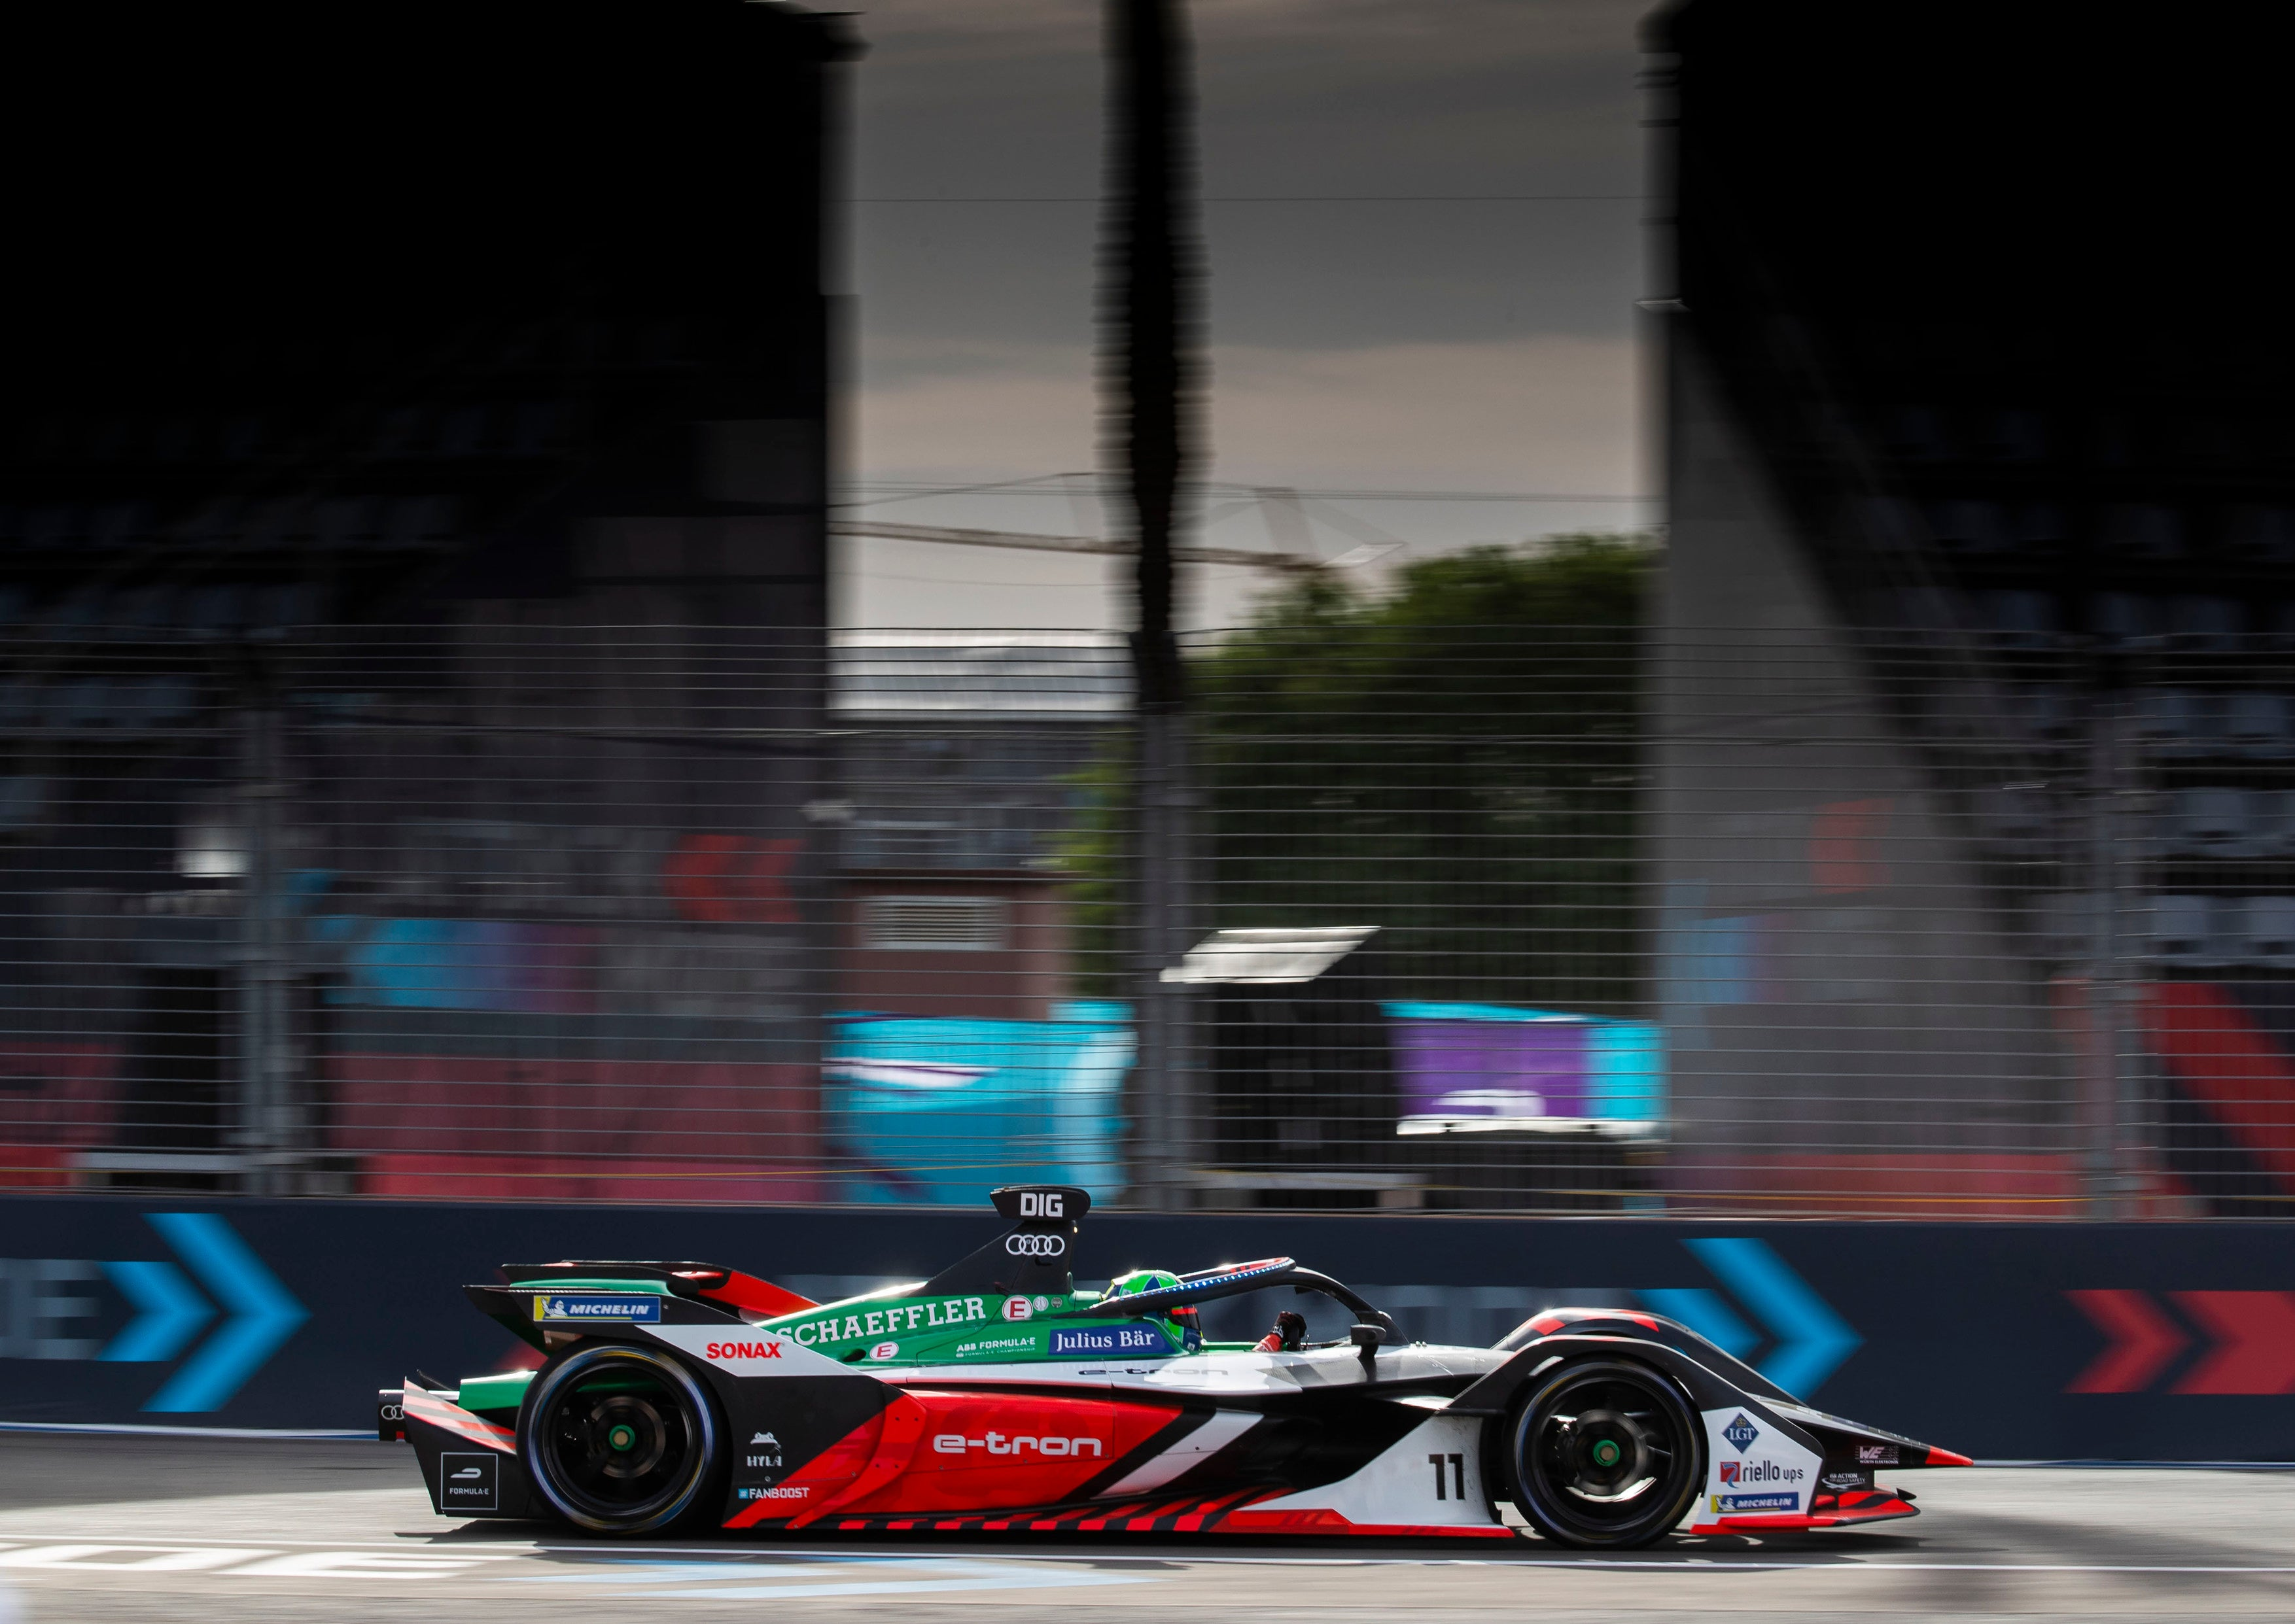 Lucas di Grassi on the track at Marrakesh 2020